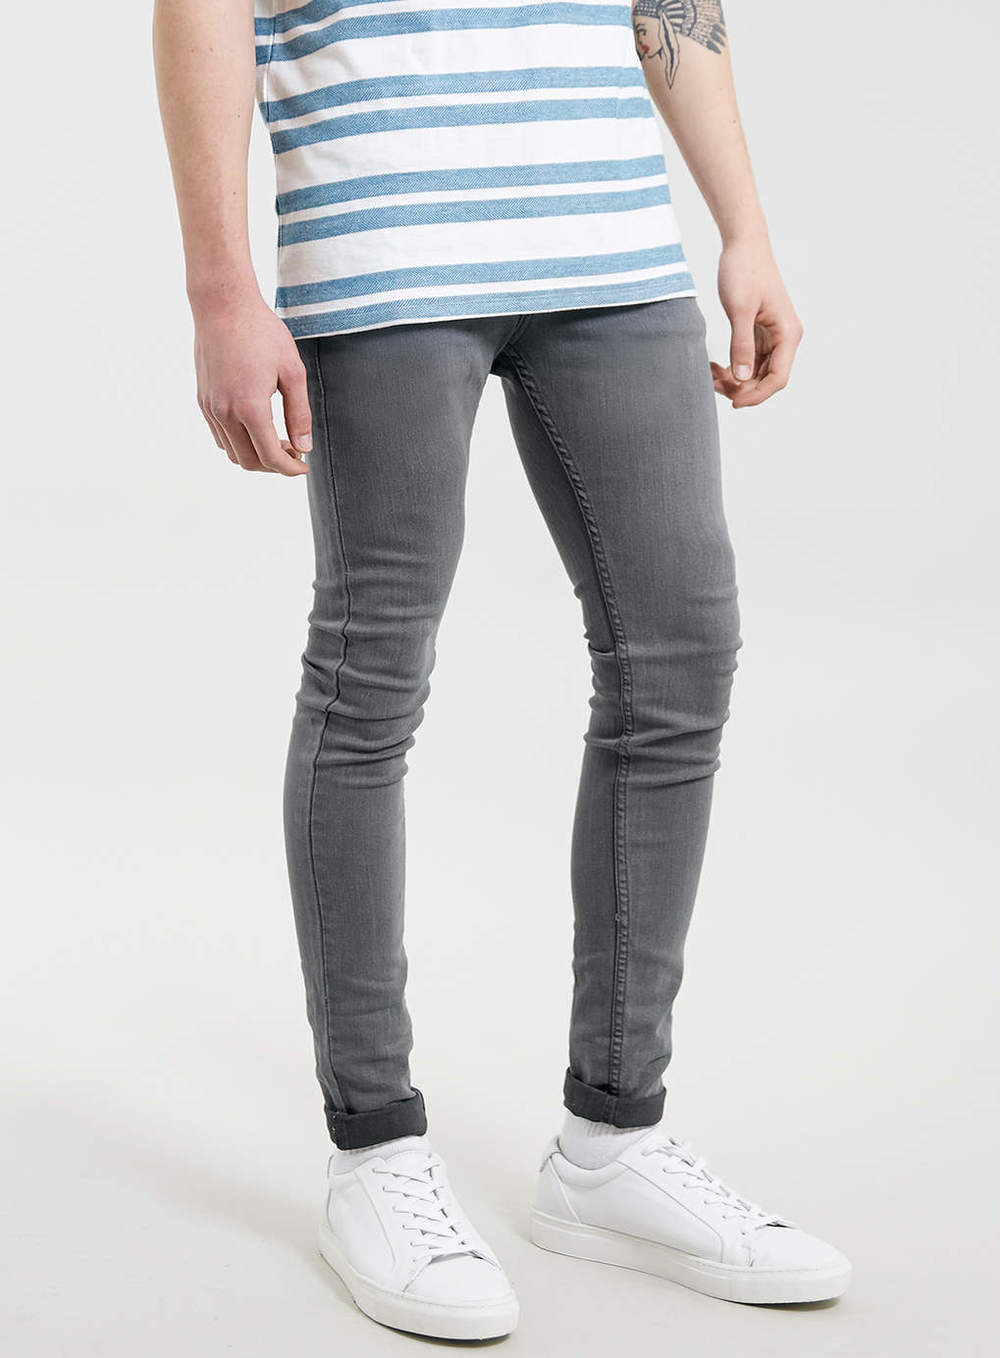 Look - Skinny Mens jeans and shoes pictures video